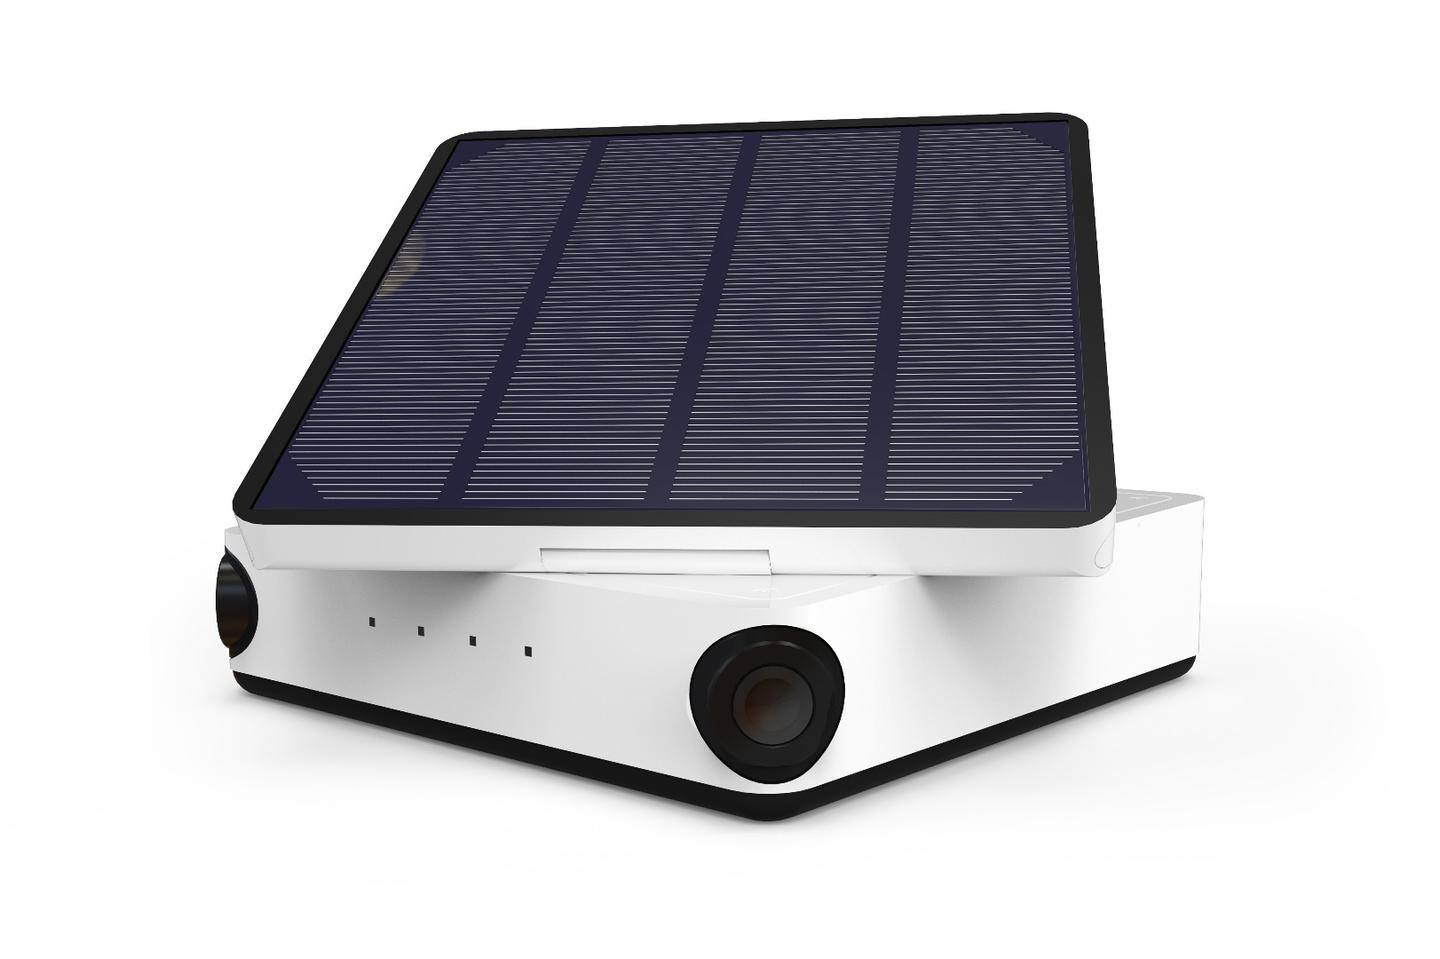 The solar panel and an integrated battery on the Tikee camera mean it can keep shooting of long periods of time